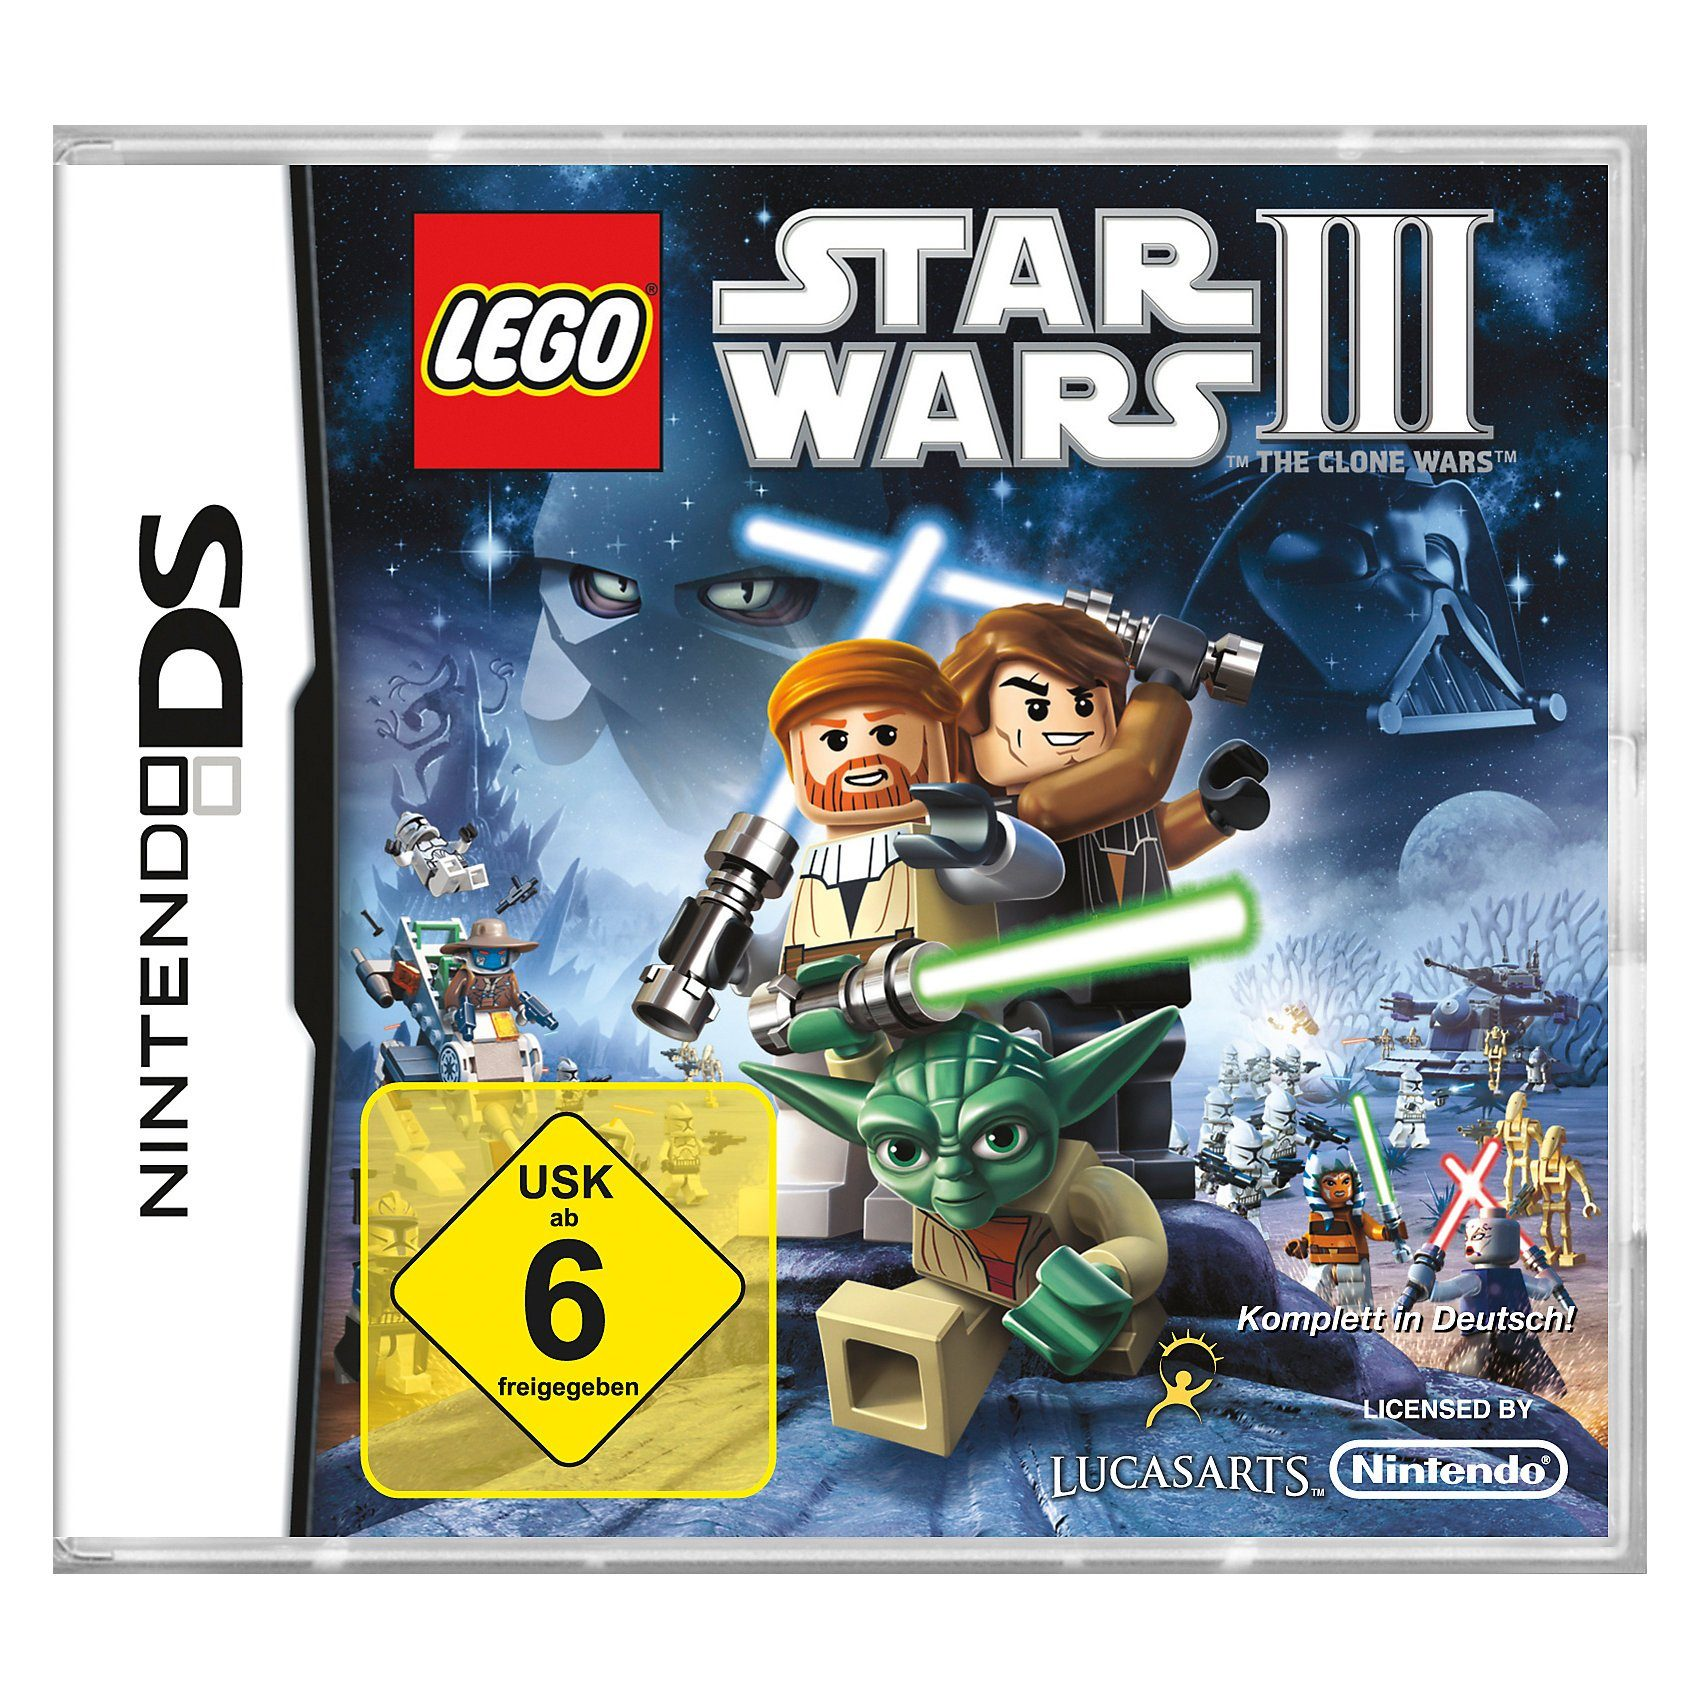 NDS Star Wars 3